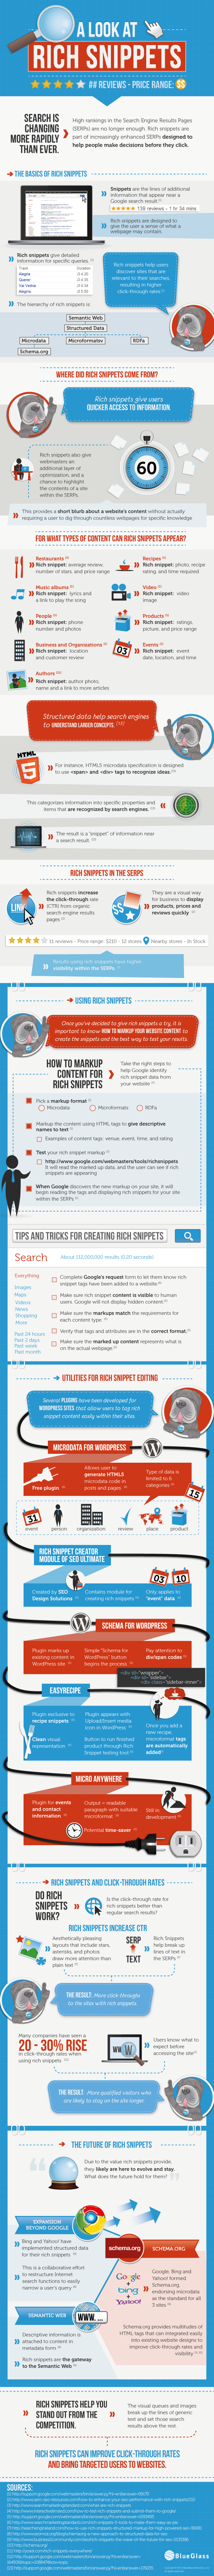 a look at rich snippets infographic